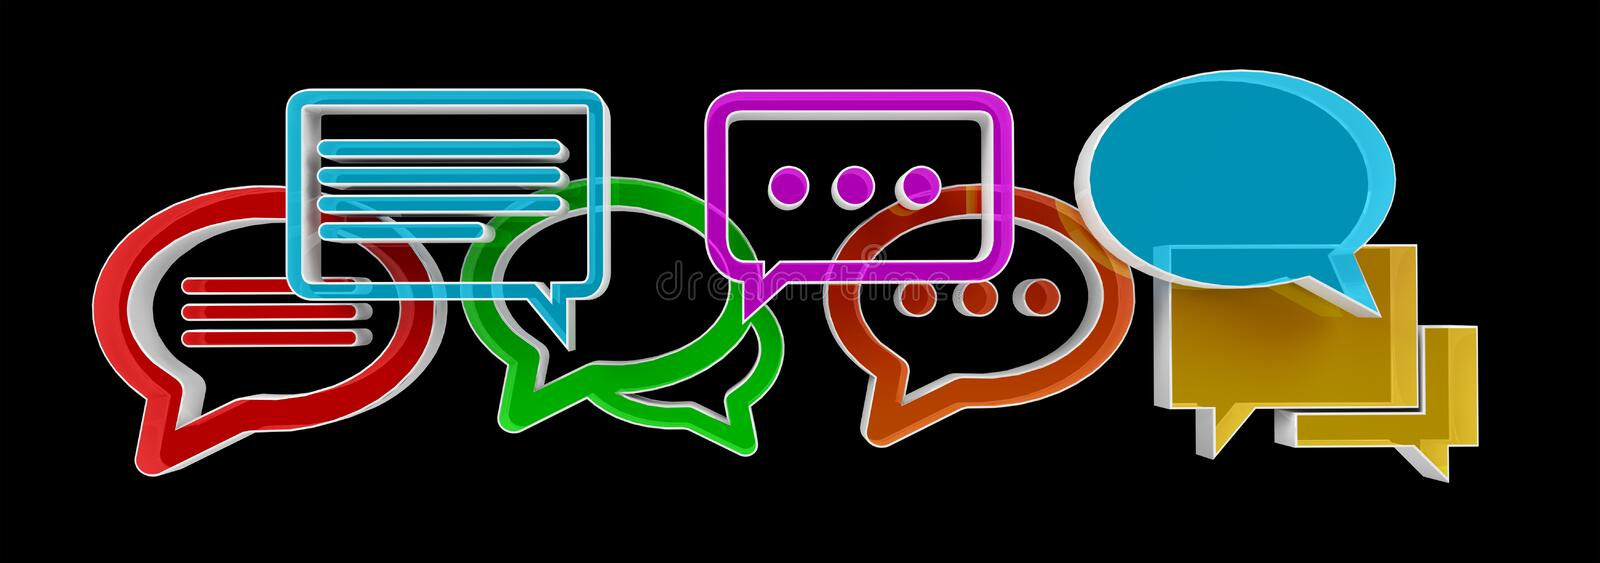 Digital colorful 3D rendering conversation icons stock illustration